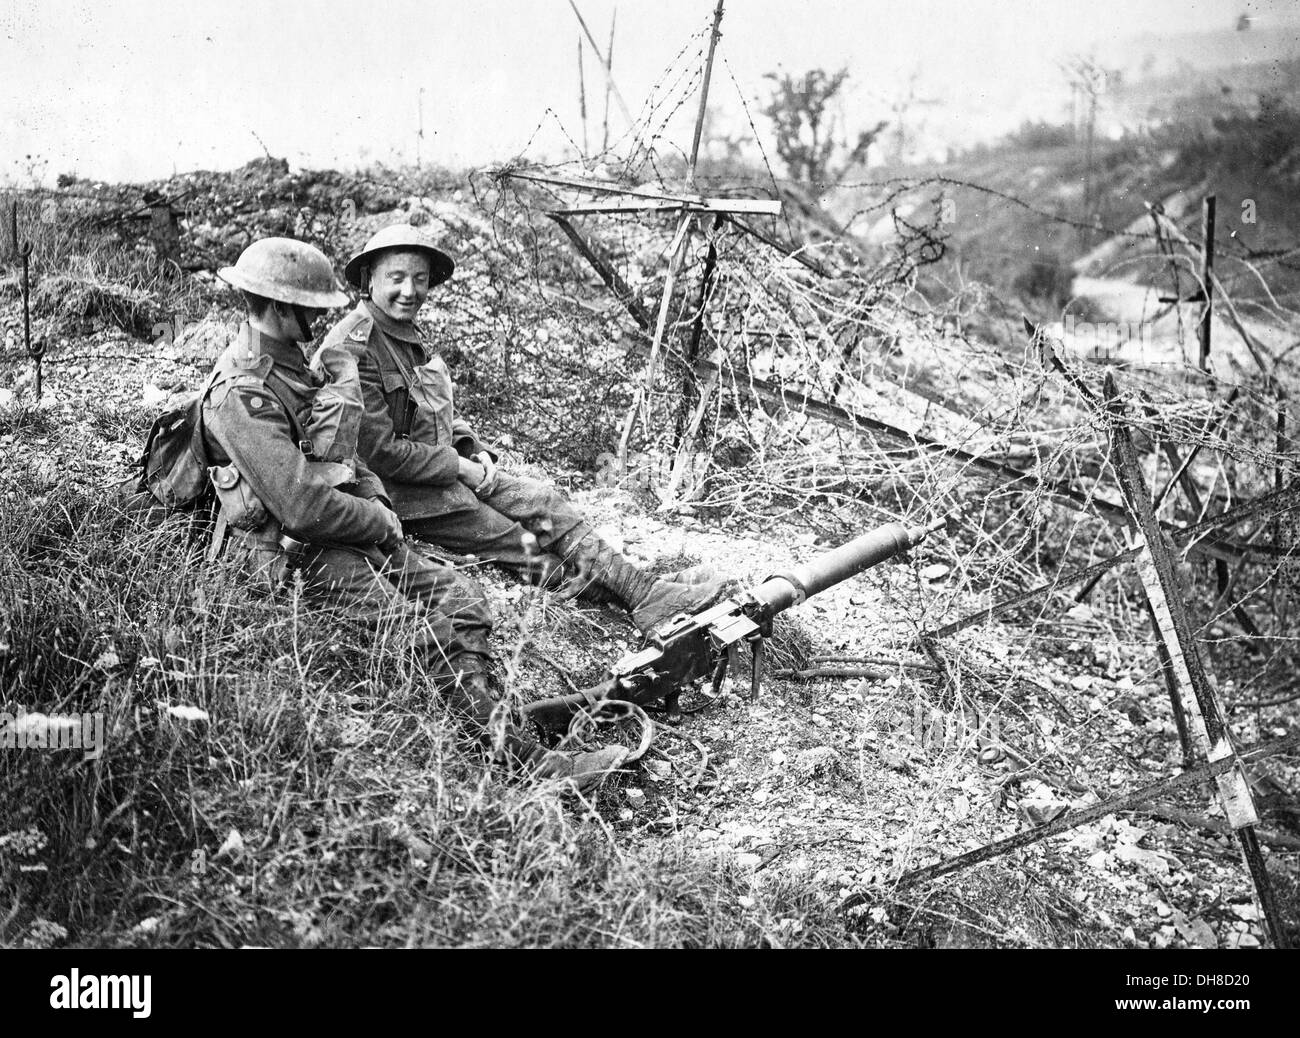 Soldier Trenches Stock Photos & Soldier Trenches Stock Images - Alamy